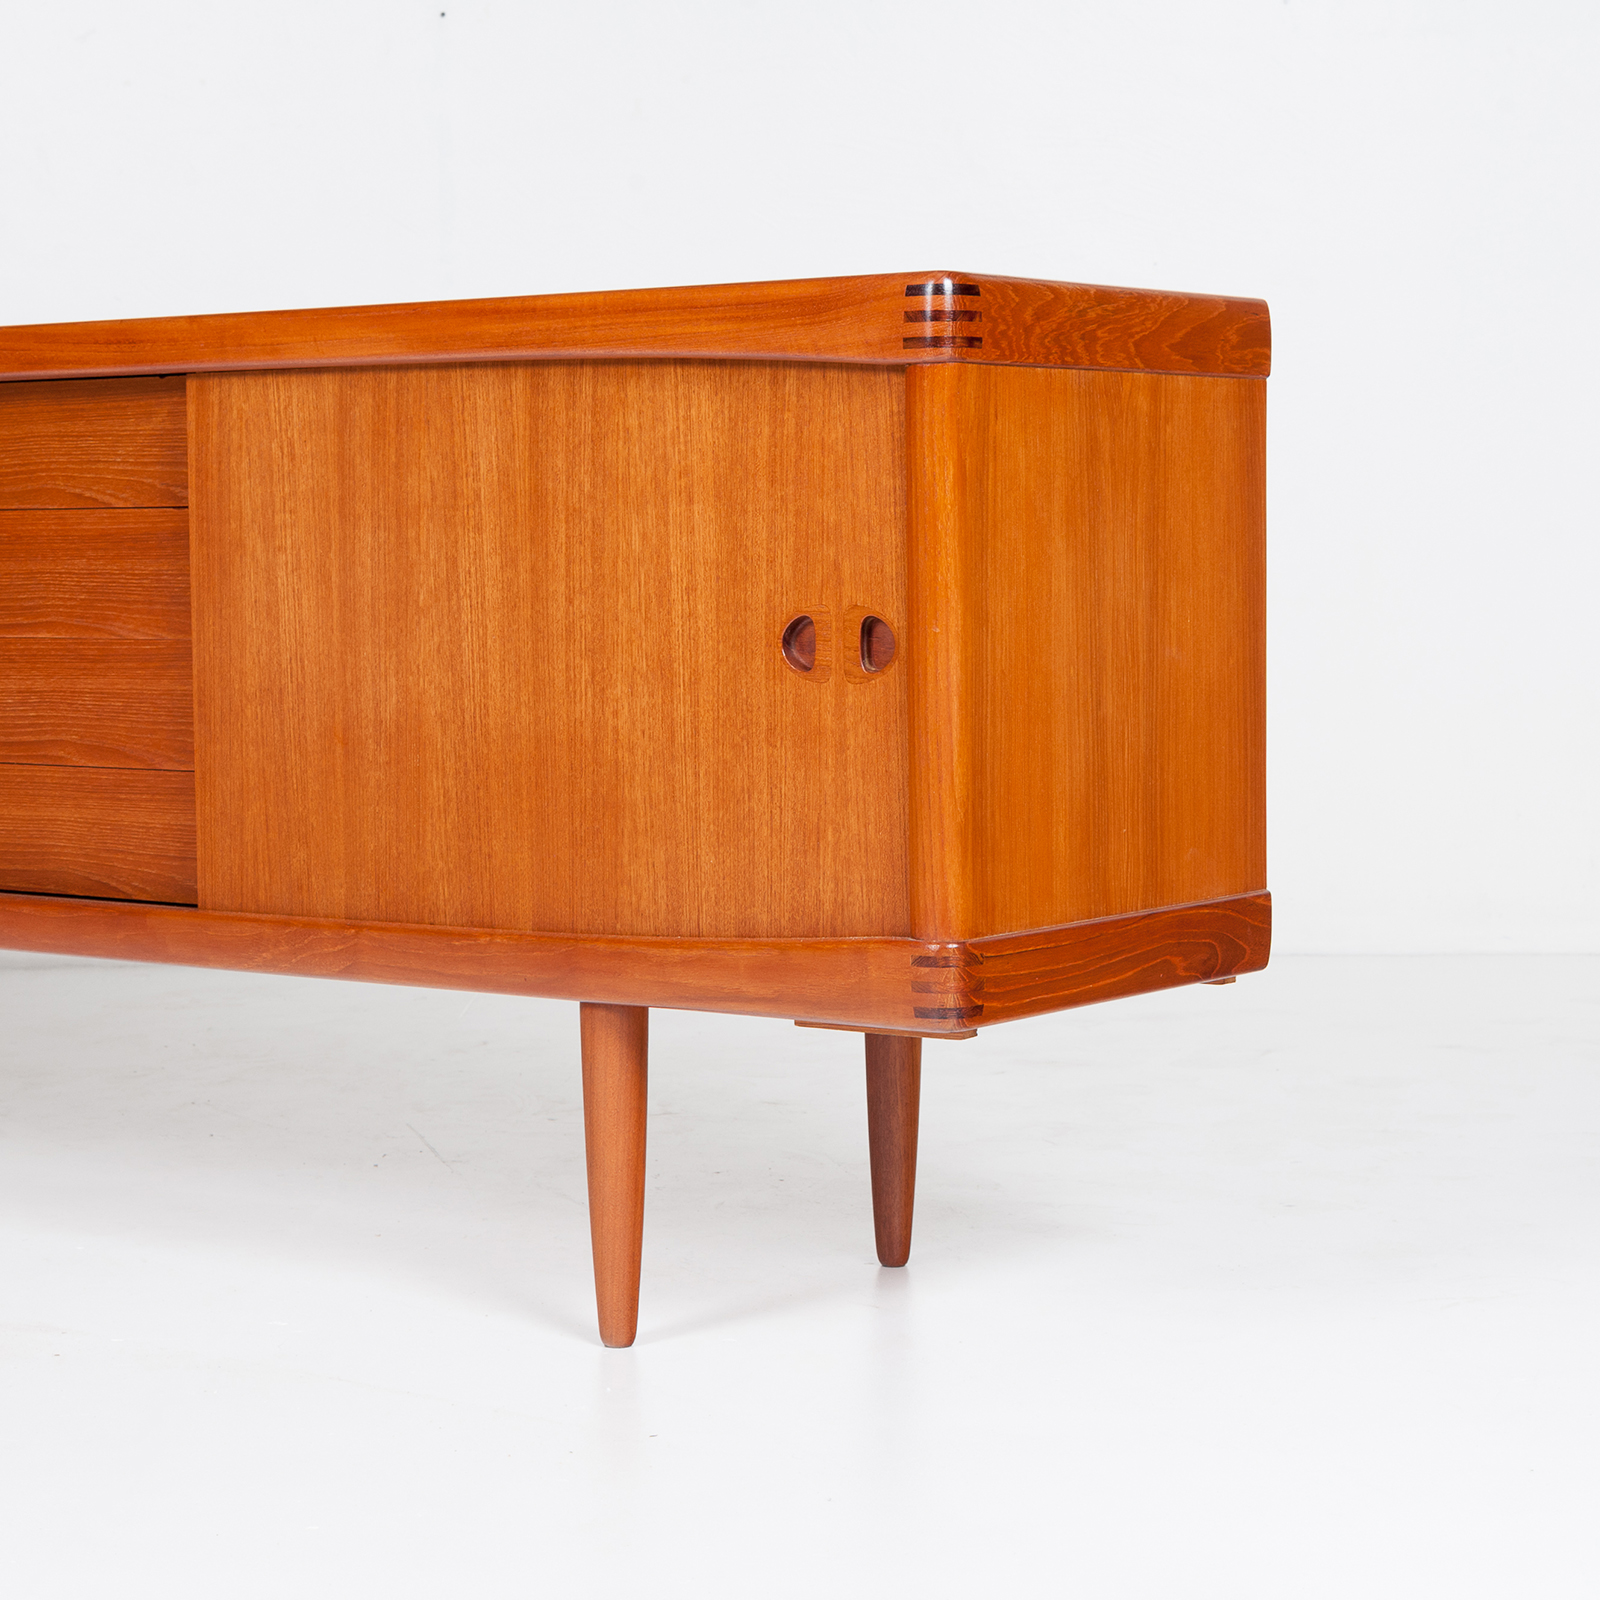 Sideboard By H W Klein In Teak For Bramin, 1960s, Denmark89